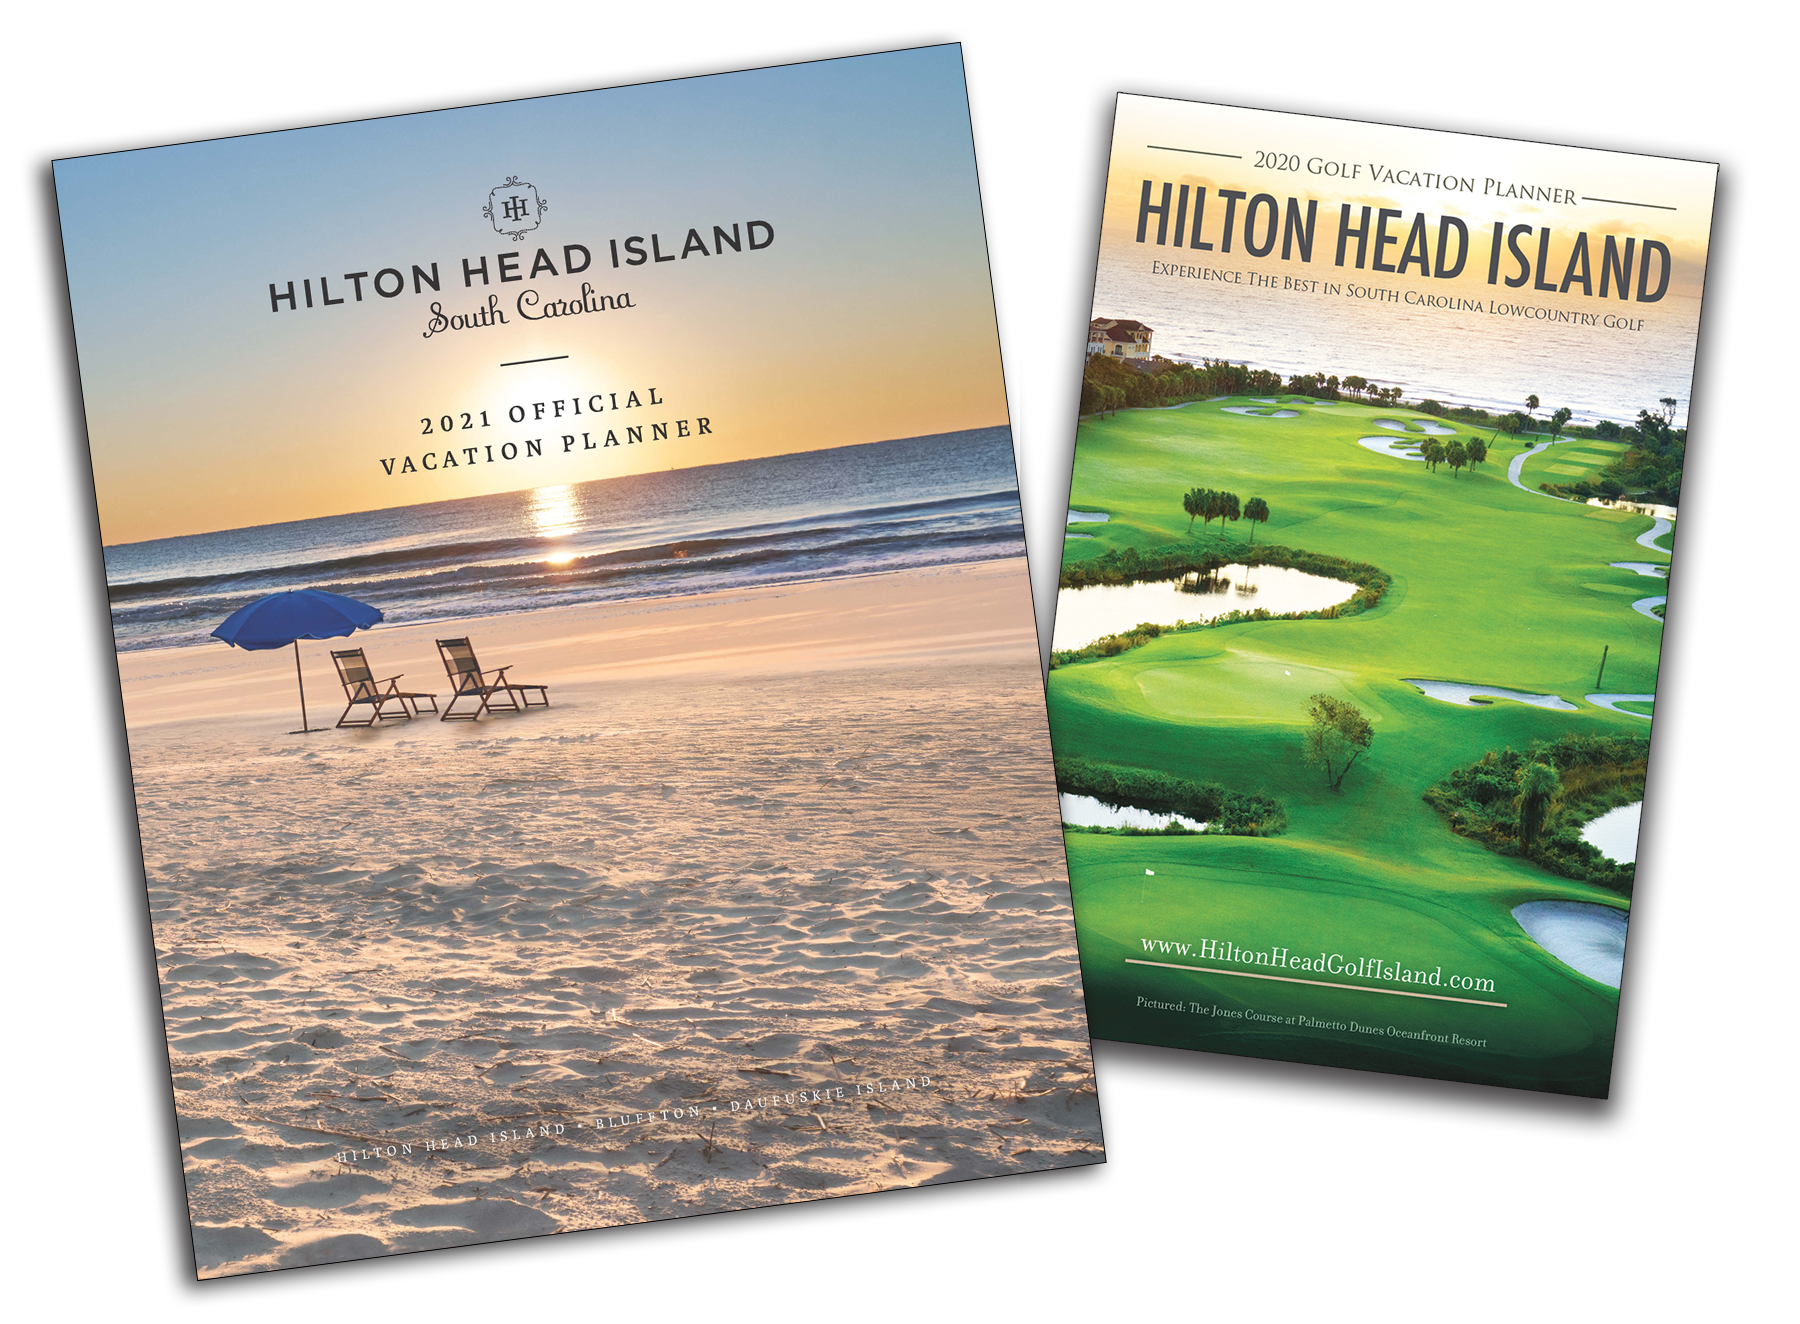 Hilton Head Island 2021 Vacation Planner